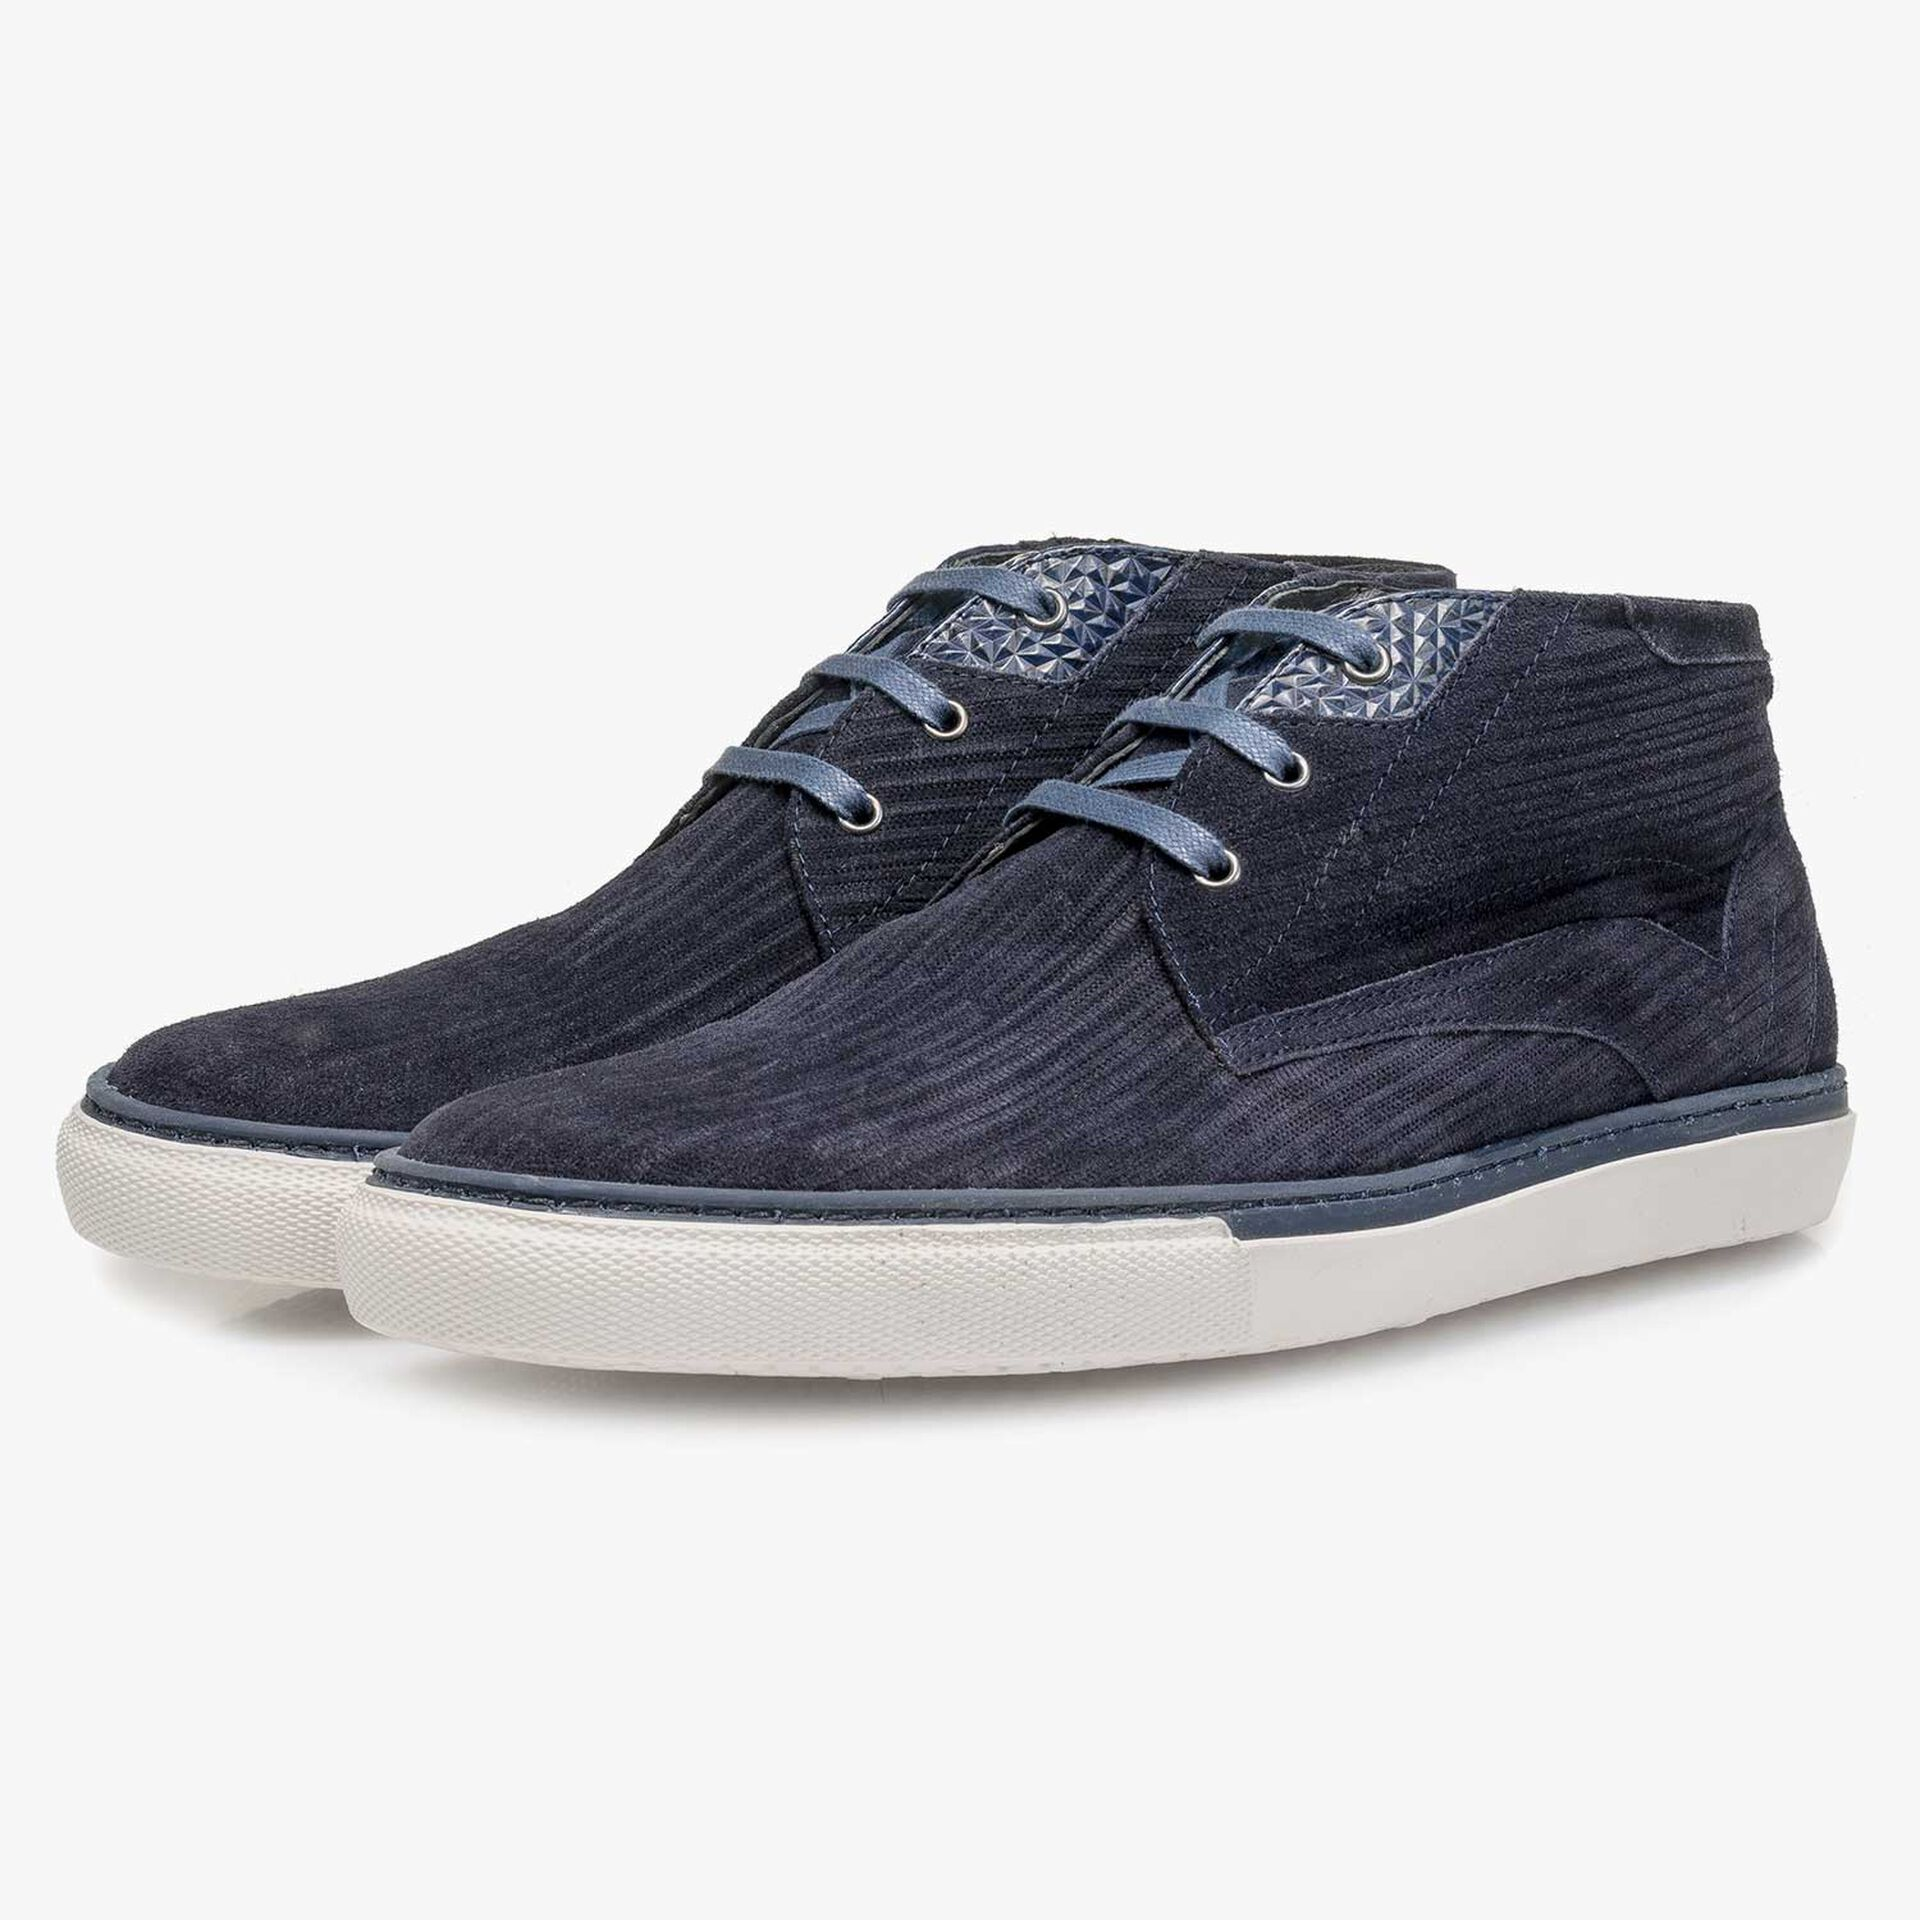 Blue calf leather lace shoe with striped pattern